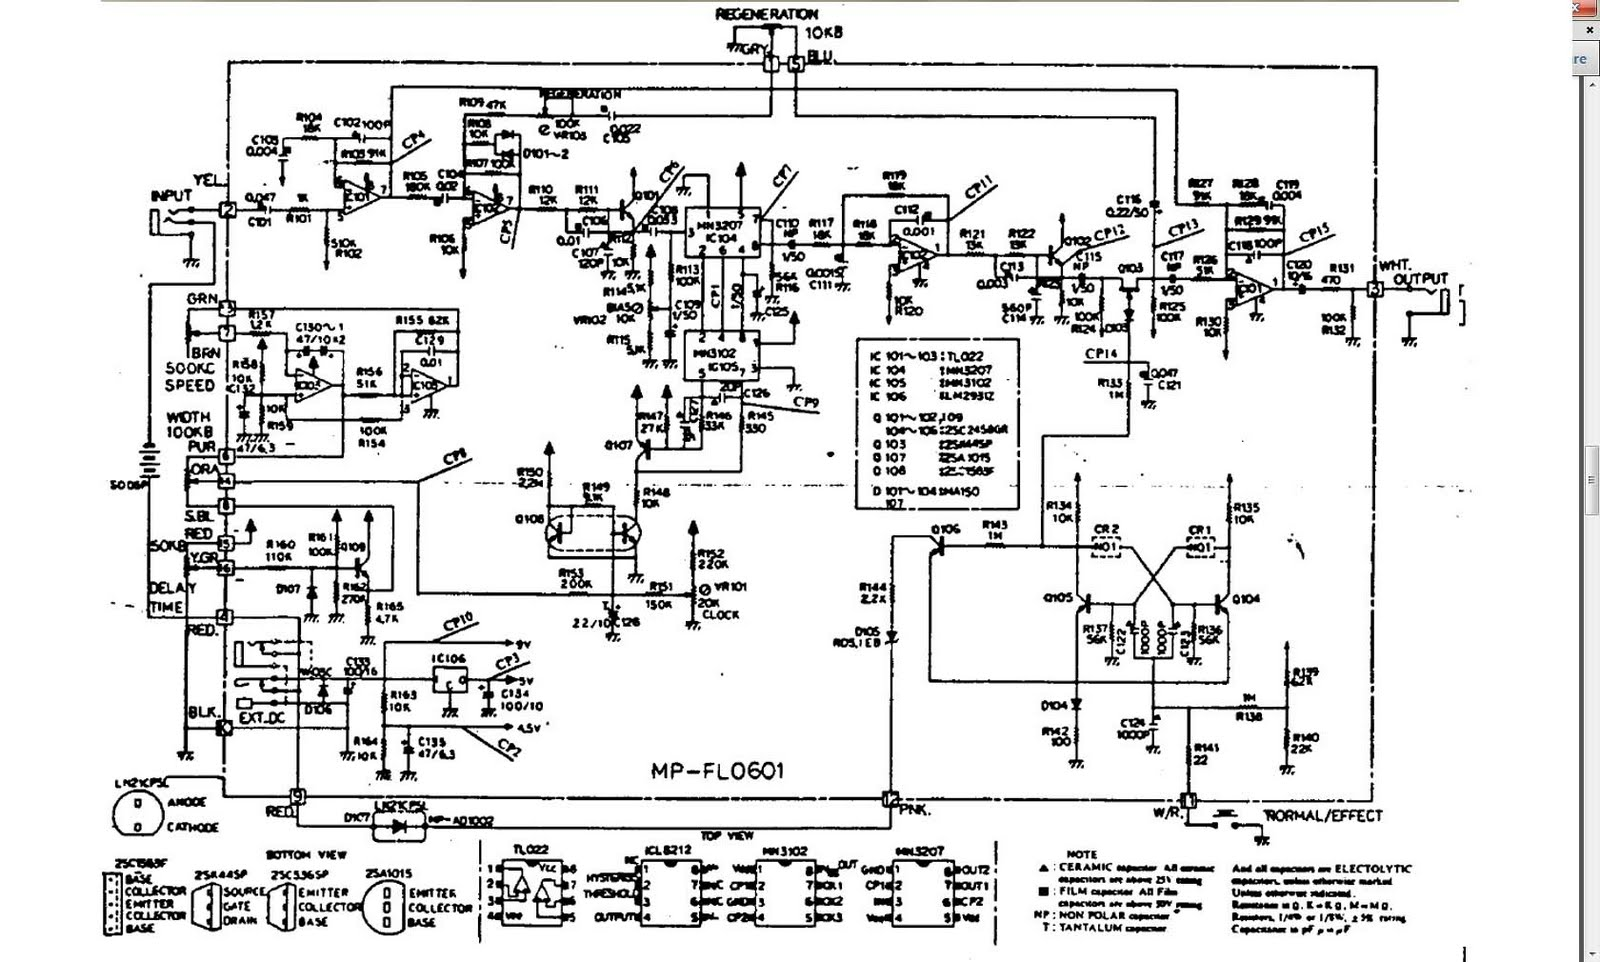 Schematic Ibanez Cp9 - Electrical Drawing Wiring Diagram •